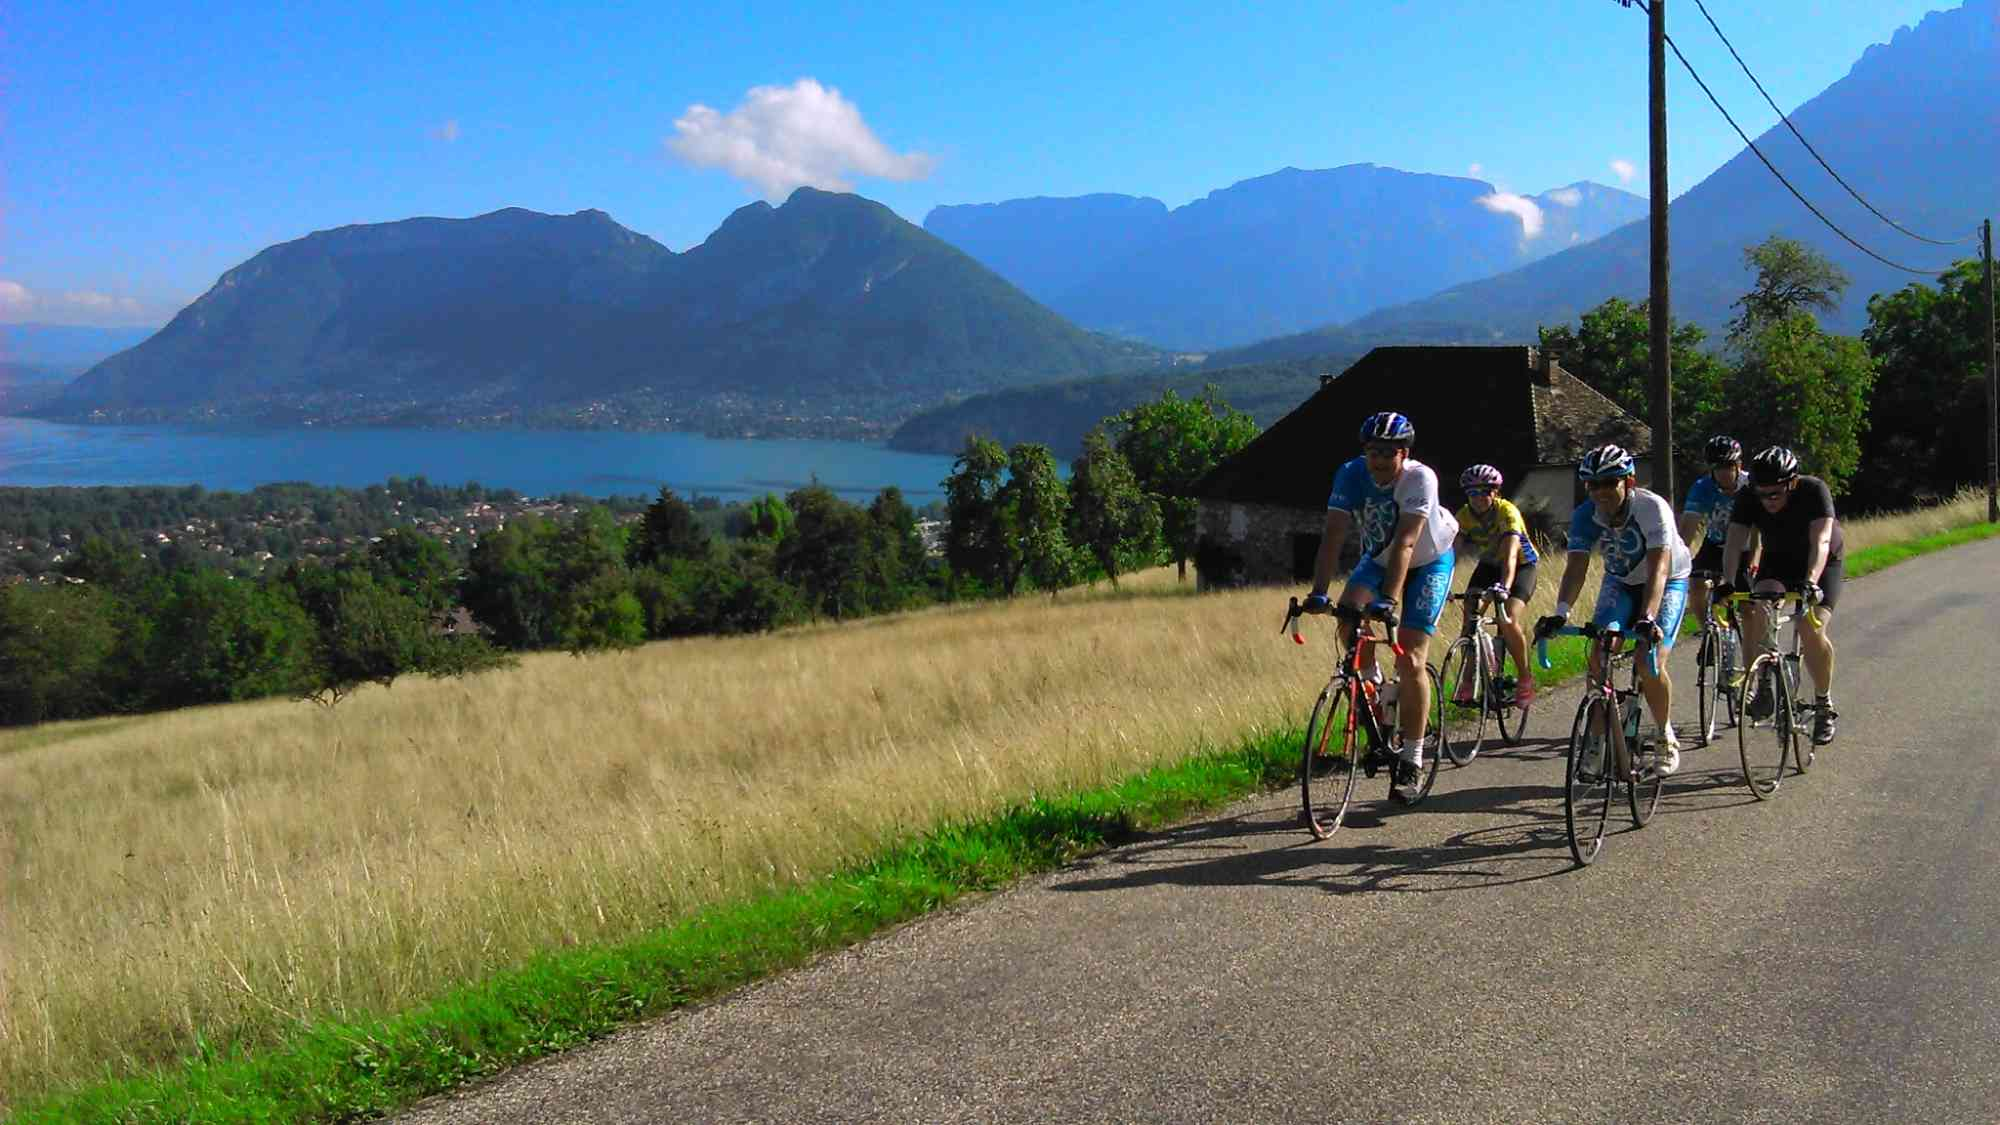 annecy bike trip french alps tours france cycling vacation practice bicycle tours. Black Bedroom Furniture Sets. Home Design Ideas